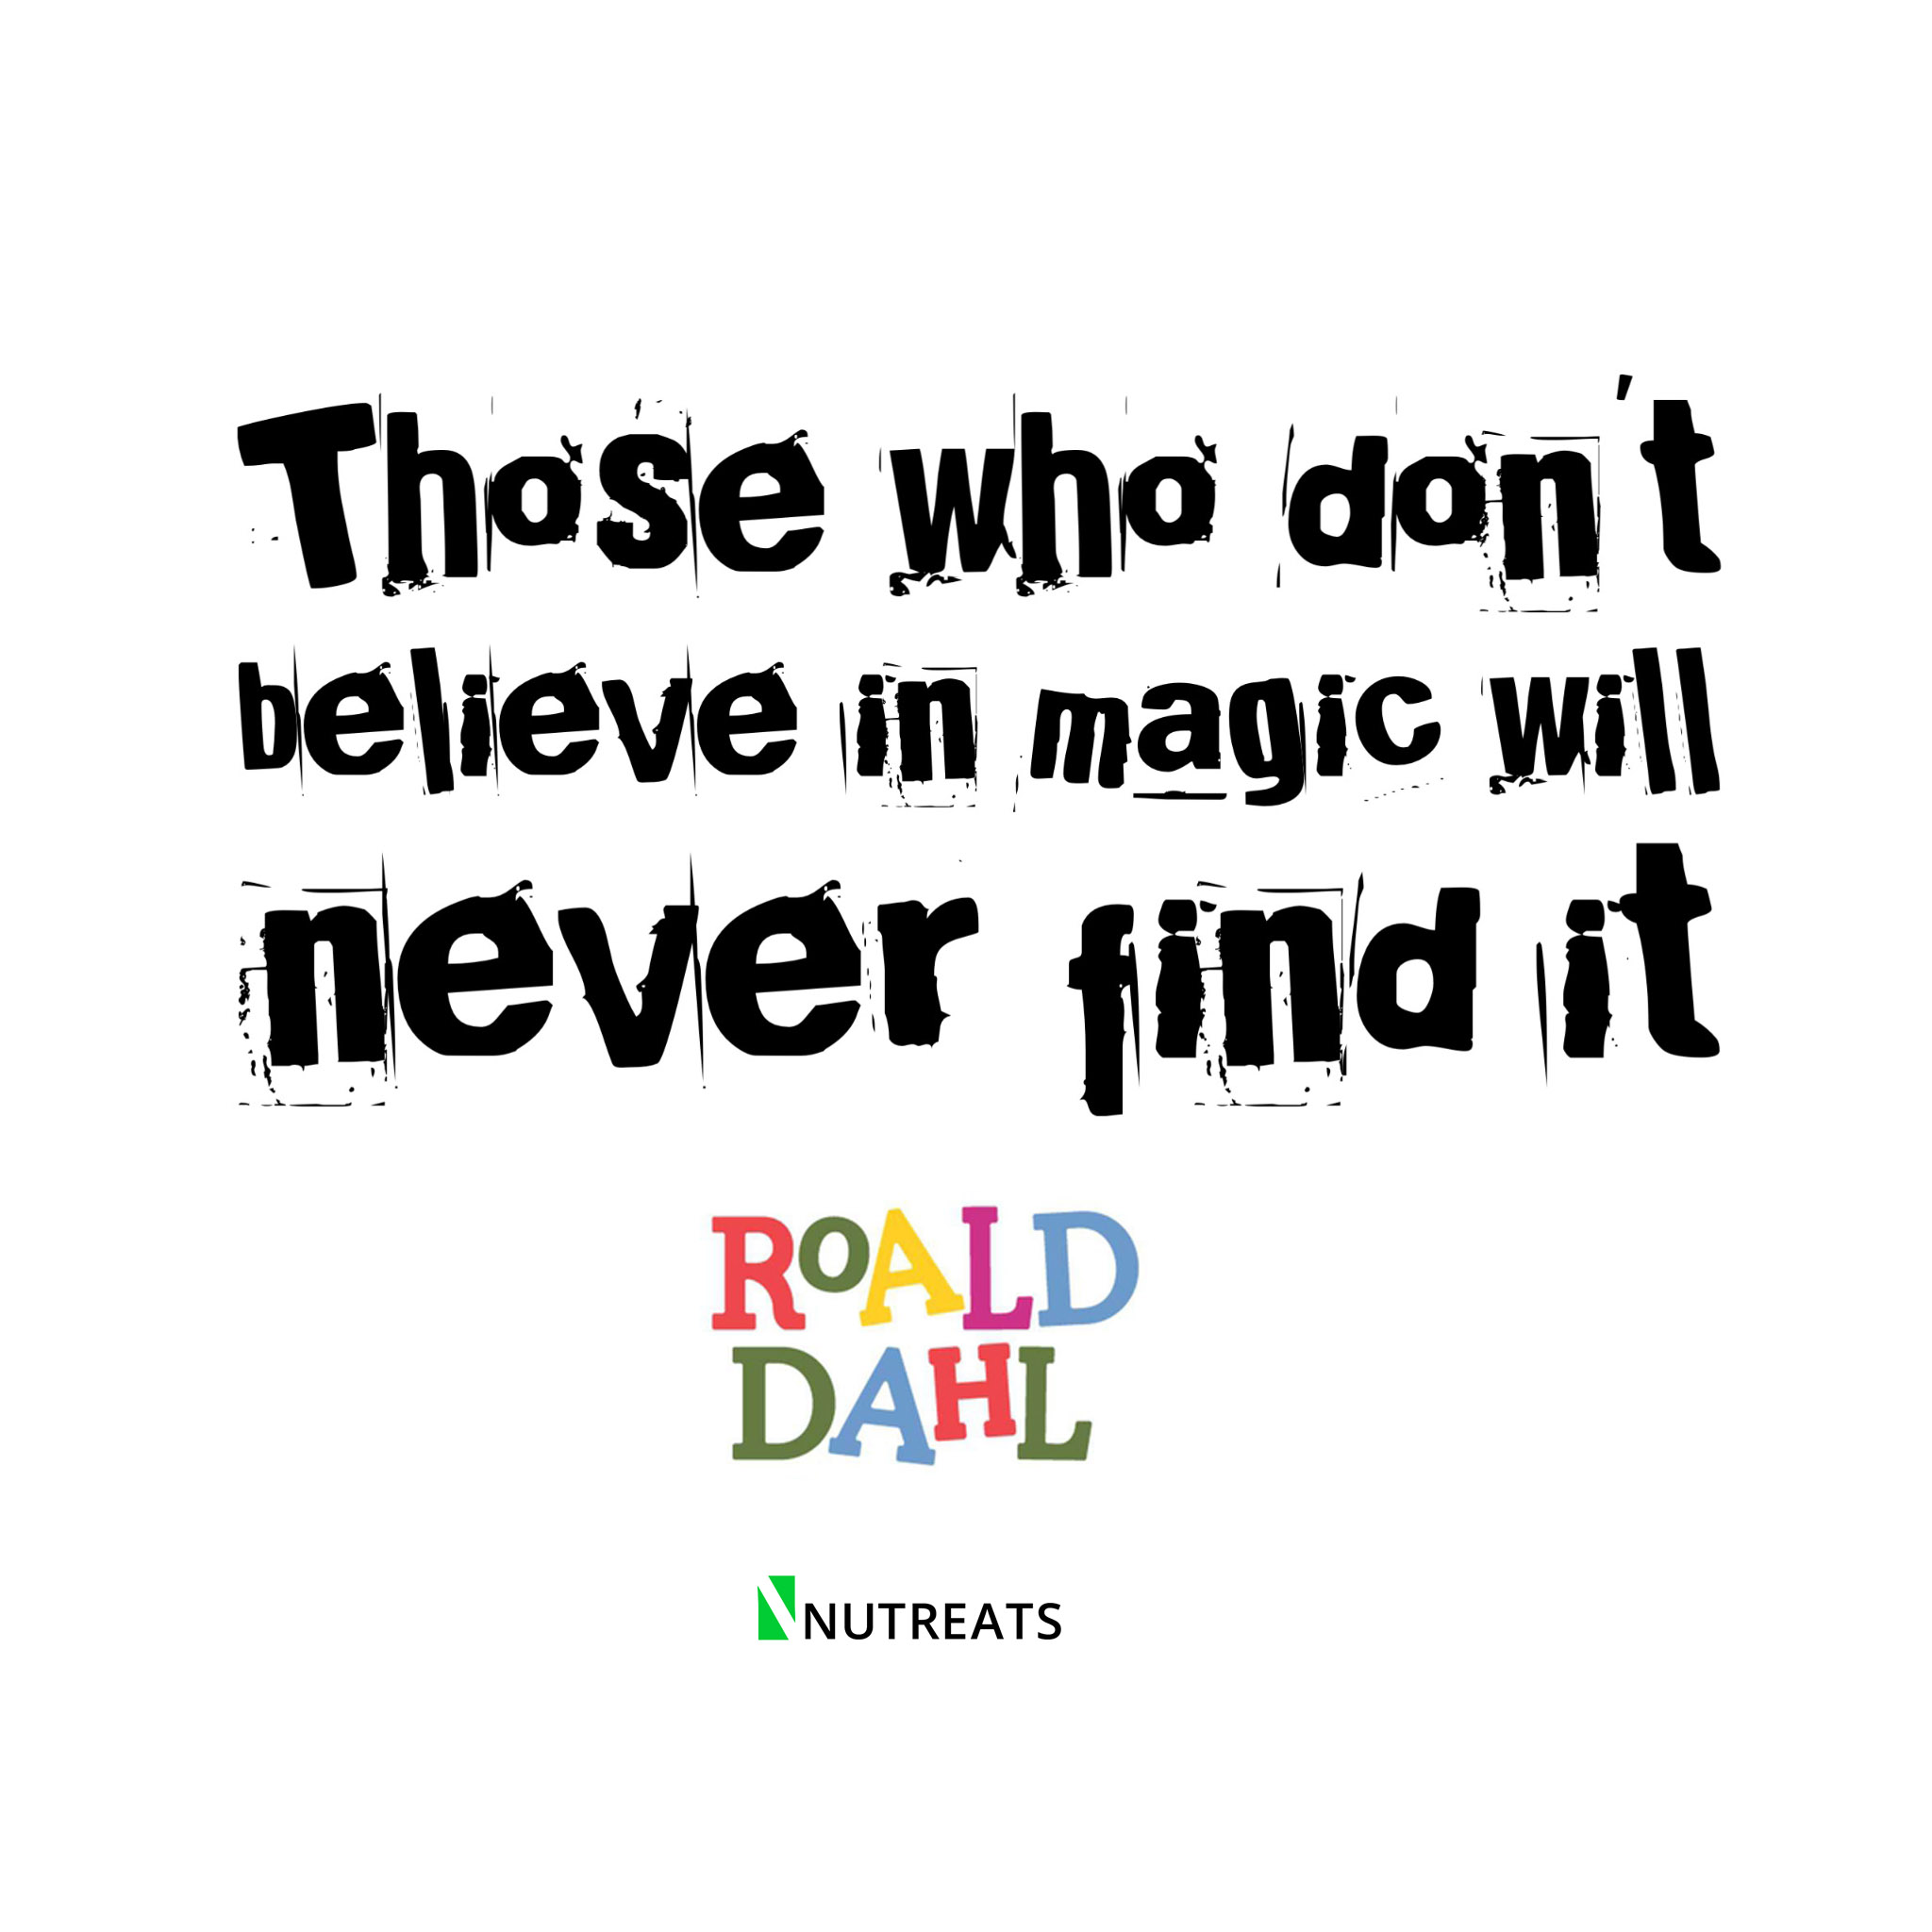 Get A Life Quotes The 13 Best Roald Dahl Quotes Filled With Life Lessons